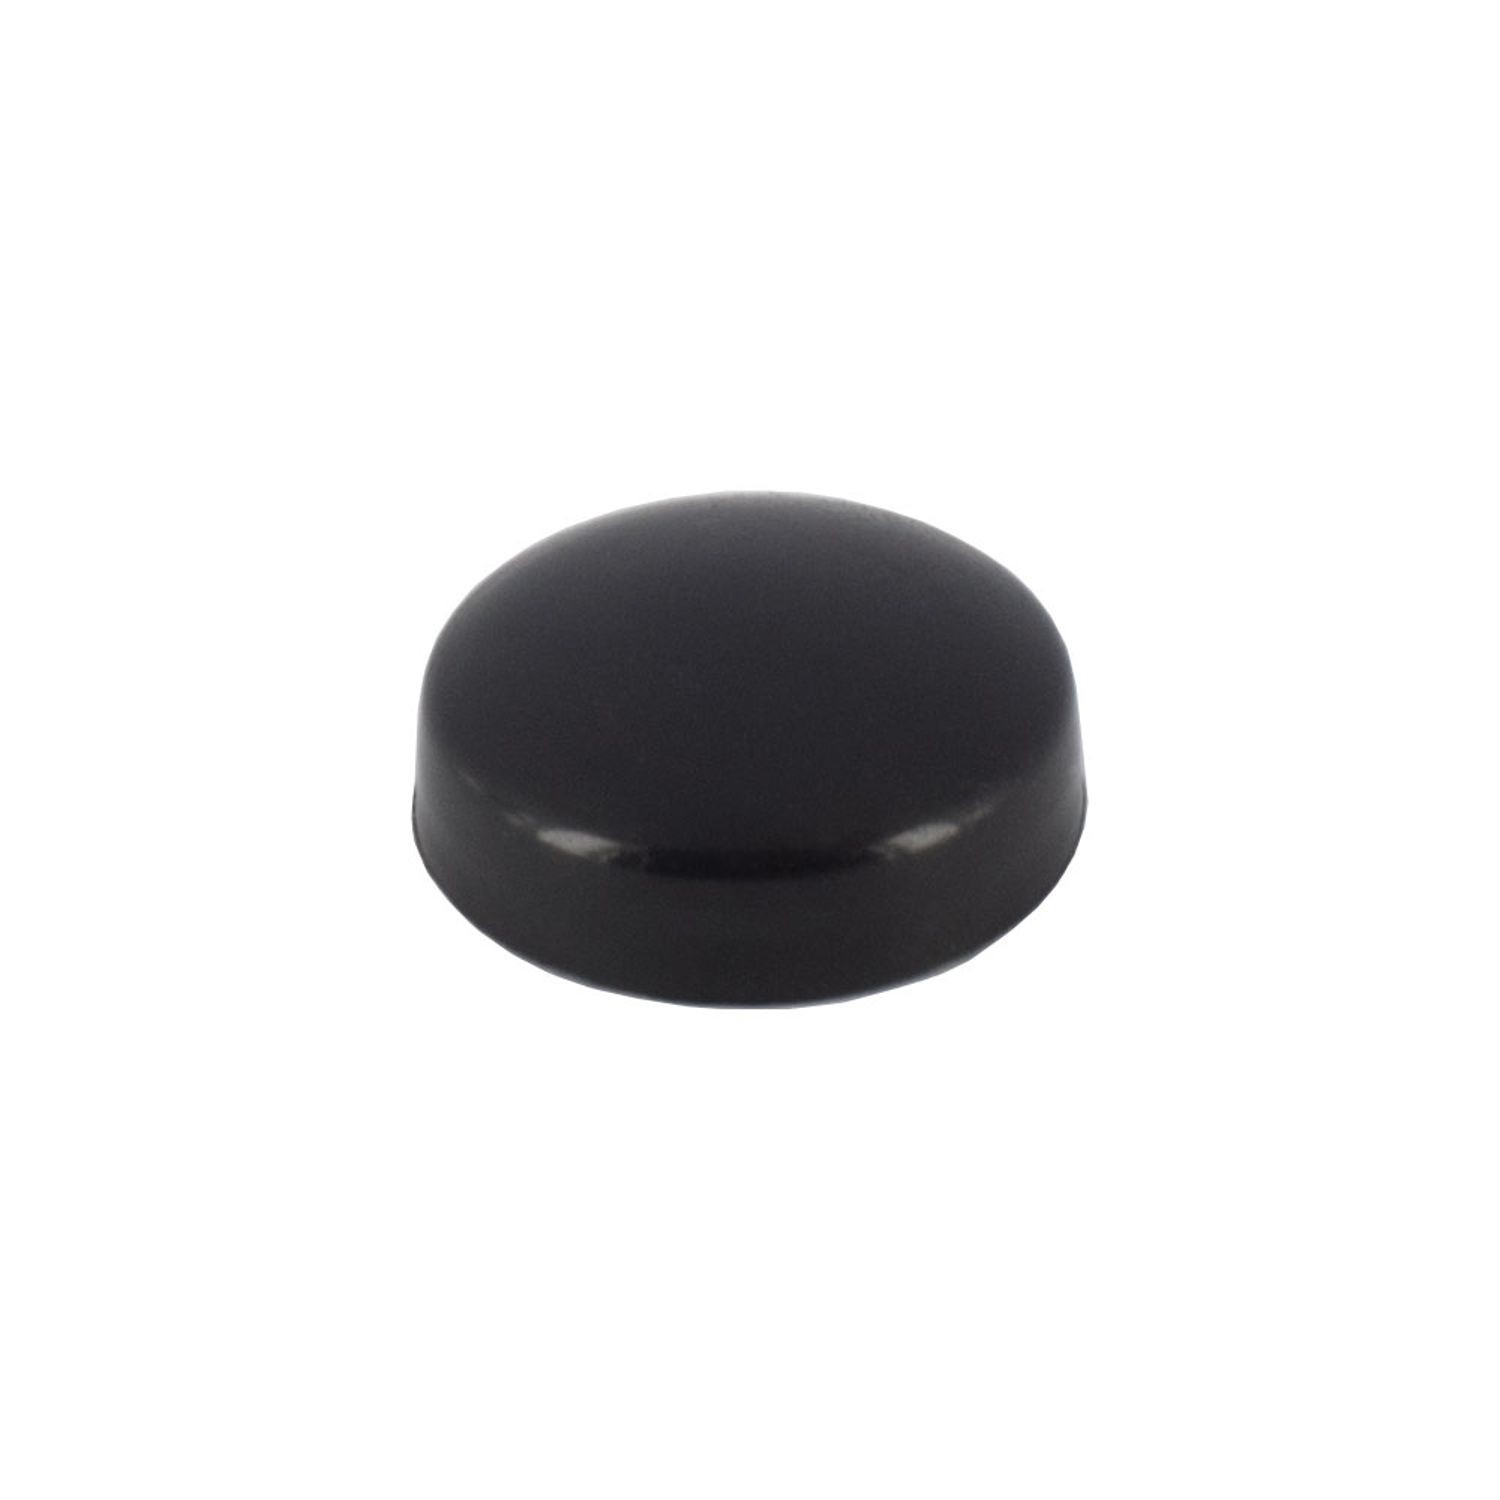 ".515"" Diameter Black Polypropylene Pop-On Scew Cover"